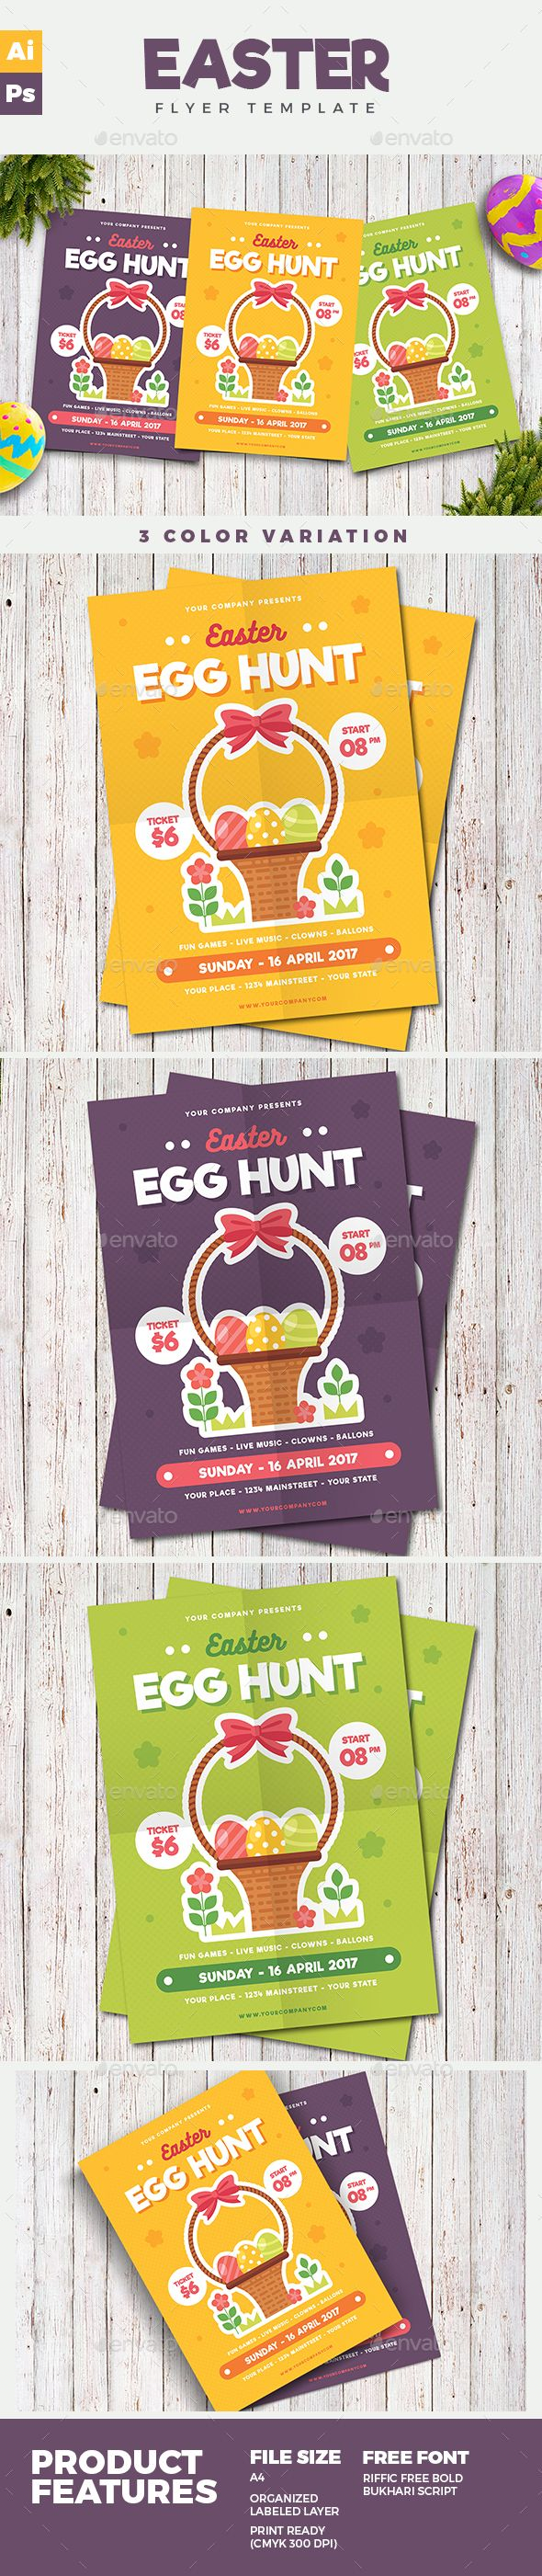 Easter Flyer Template PSD, AI Illustrator